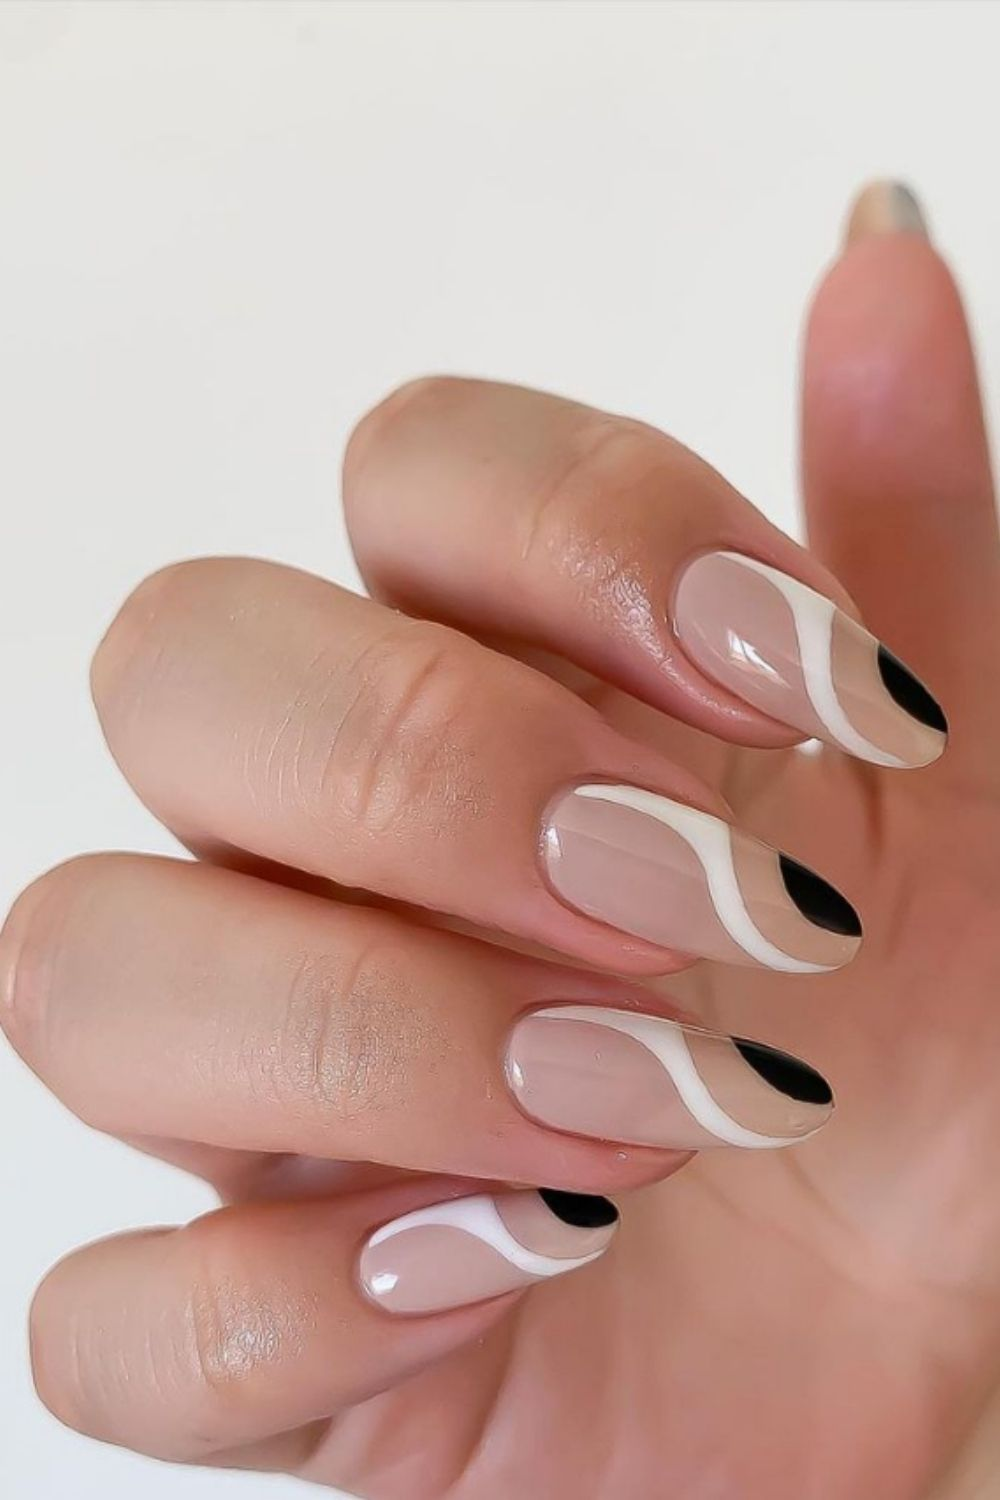 40 Stylish Black And White Nails To Do In Summer 2021!